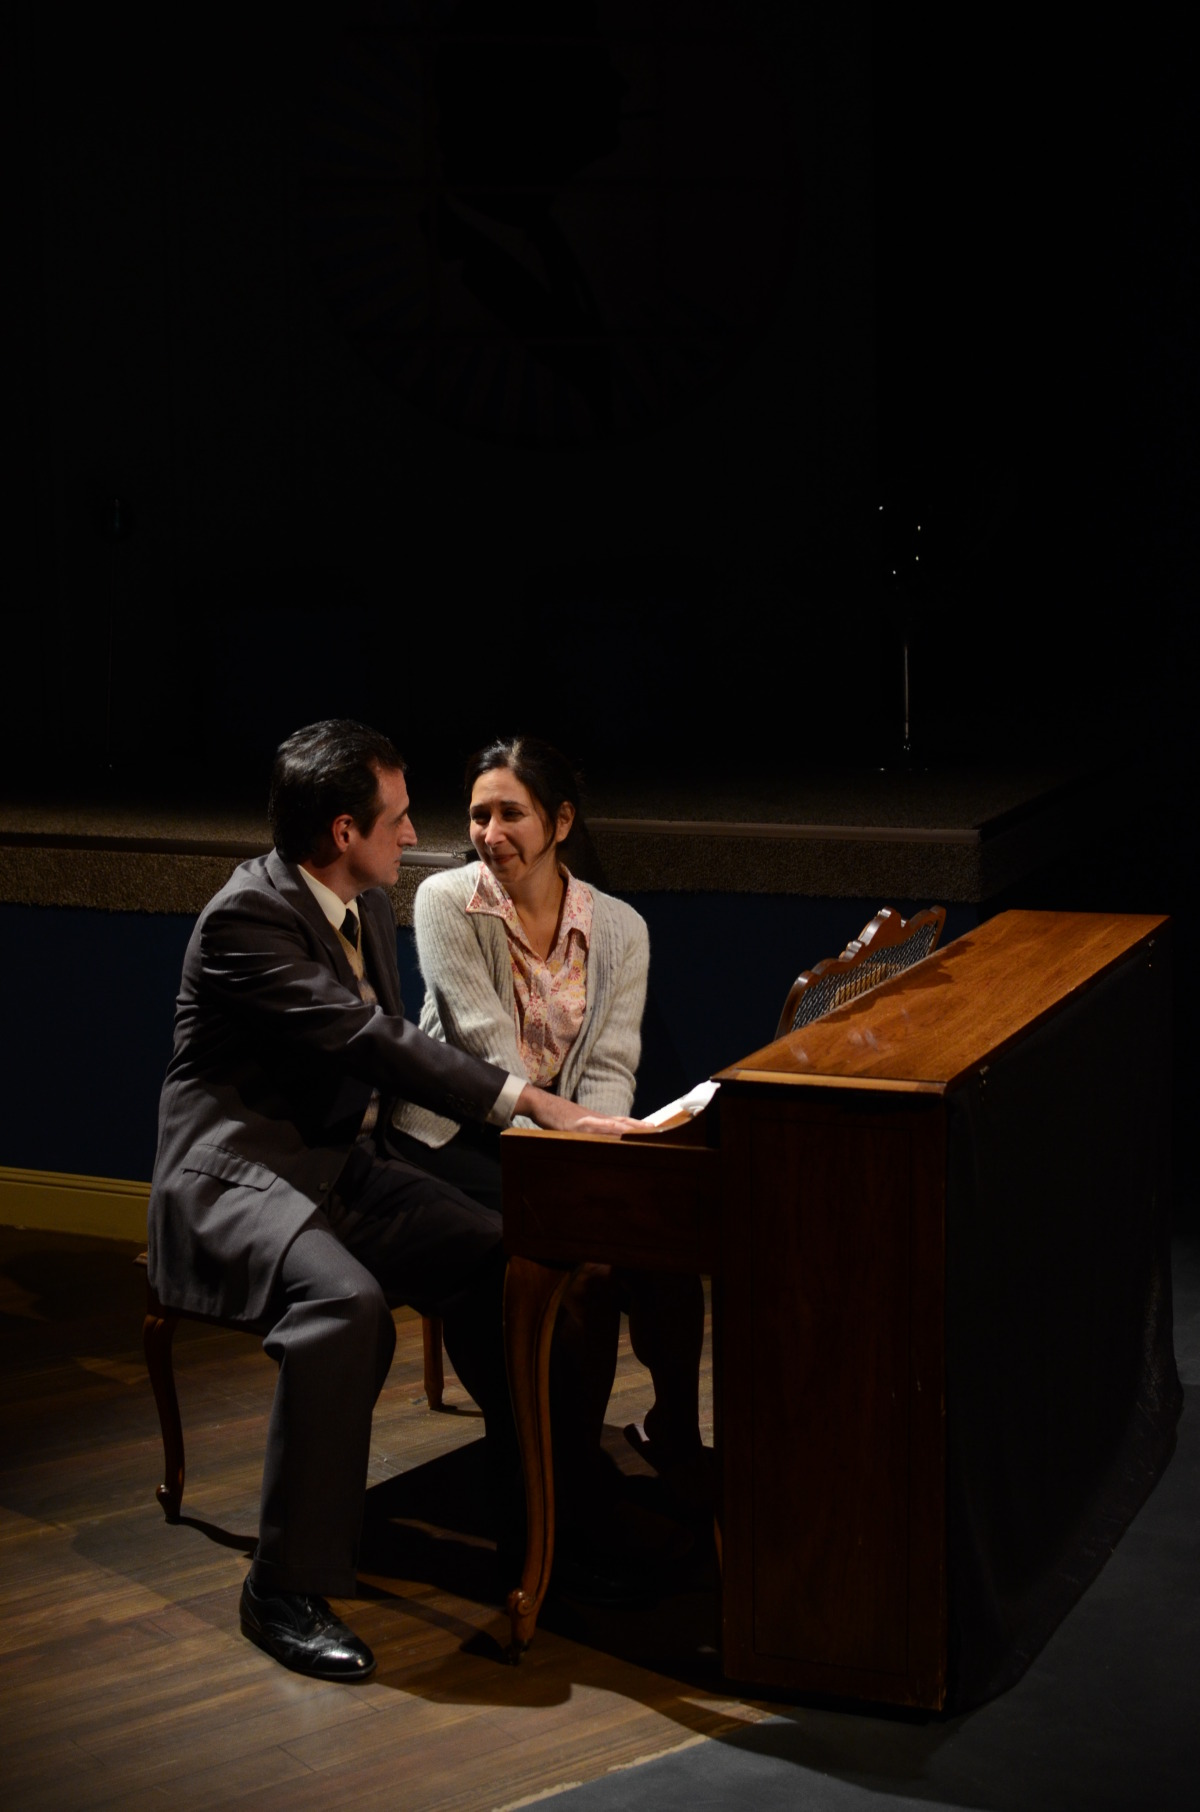 Sean Patrick Reilly and Amy Herzberg in The Spiritualist (2013). Bettencourt Chase Photography.